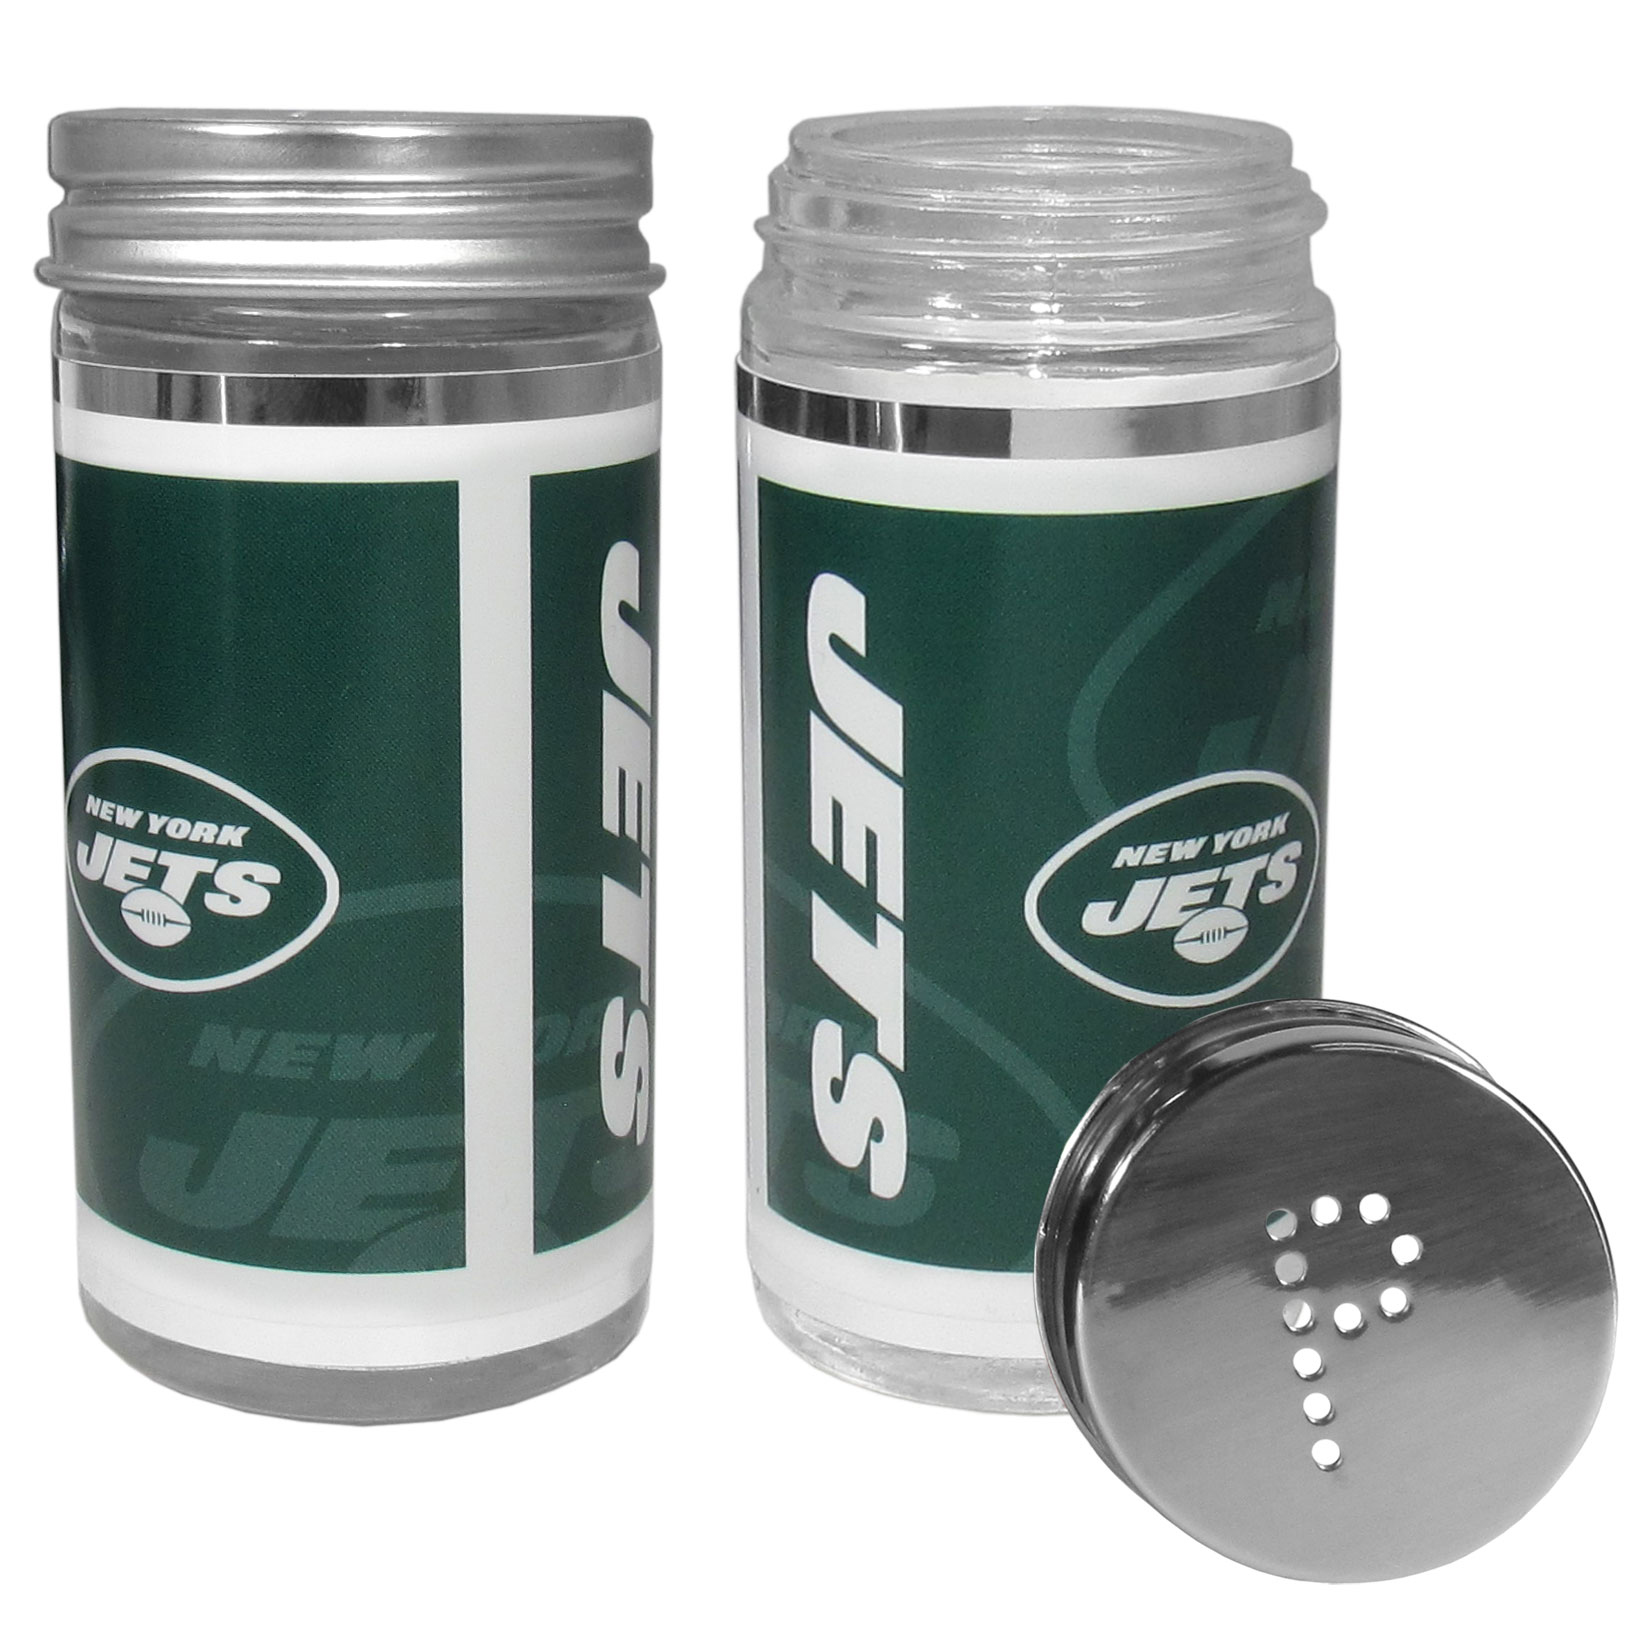 New York Jets Tailgater Salt and Pepper Shakers - No tailgate party is complete without your New York Jets salt & pepper shakers featuring bright team graphics. The glass shakers are 3.75 inches tall and the screw top lids have holes that spell out P and S. These team shakers are a great grill accessory whether you are barbecuing on the patio, picnicing or having a game day party.